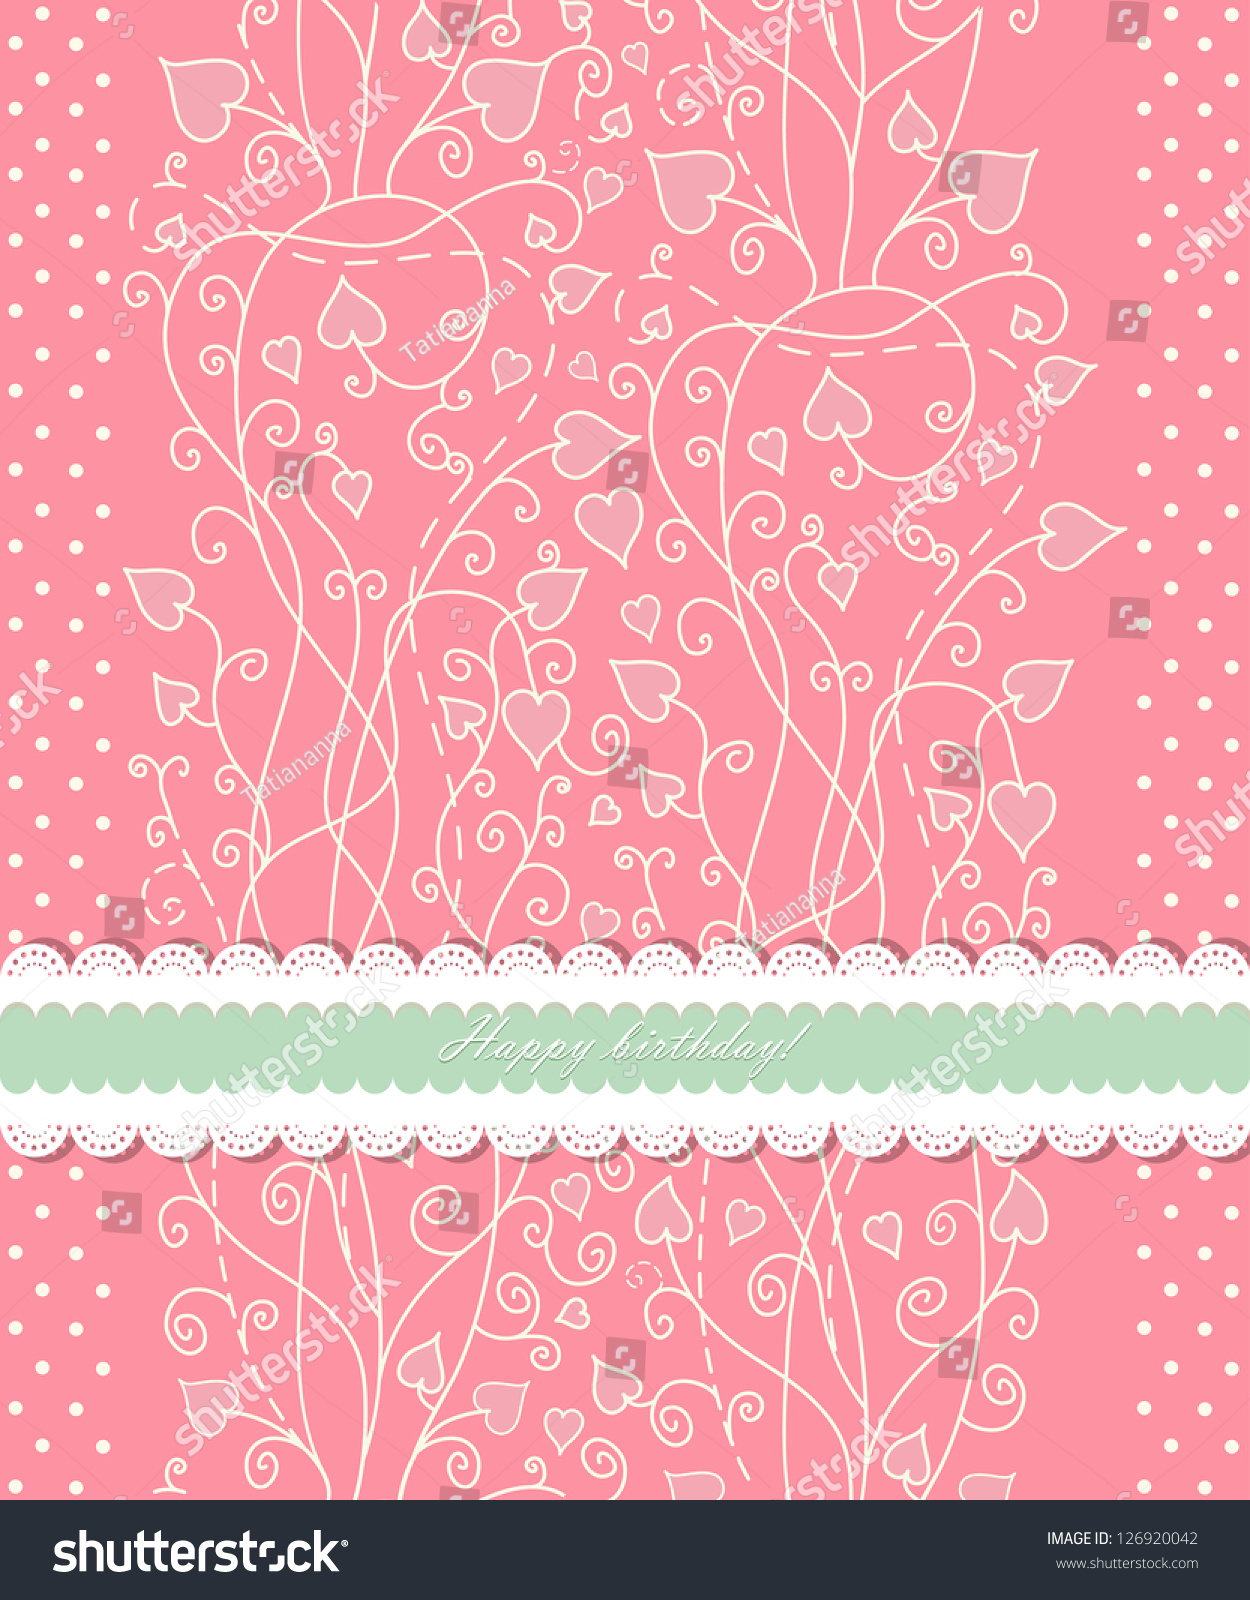 vintage pink background for invitation backdrop card new year brochure banner